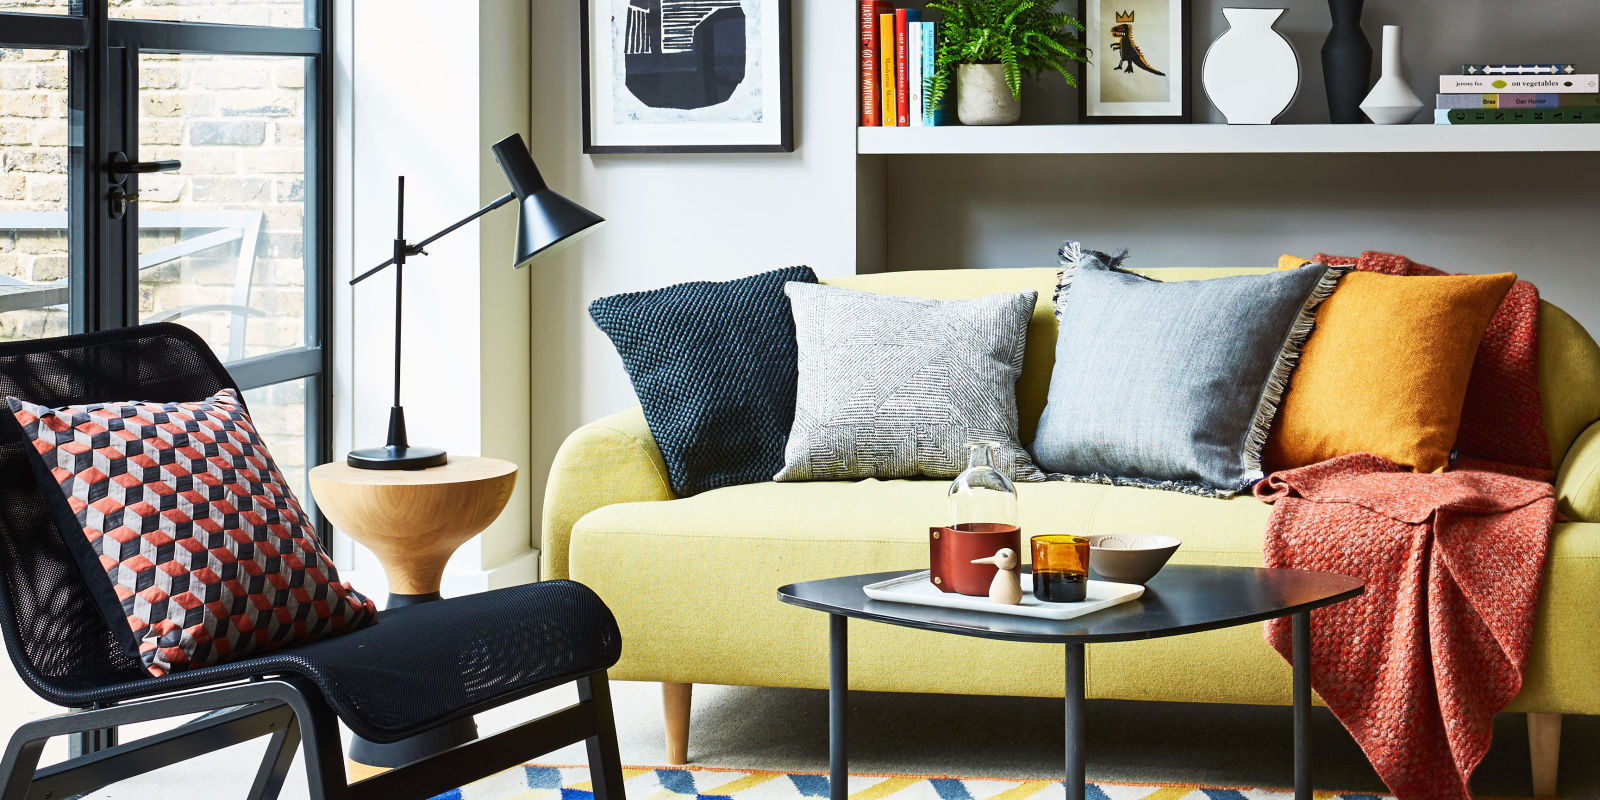 yellow and grey colour scheme living room styling by kiera buckley jones photography - Ideas For Living Room Design